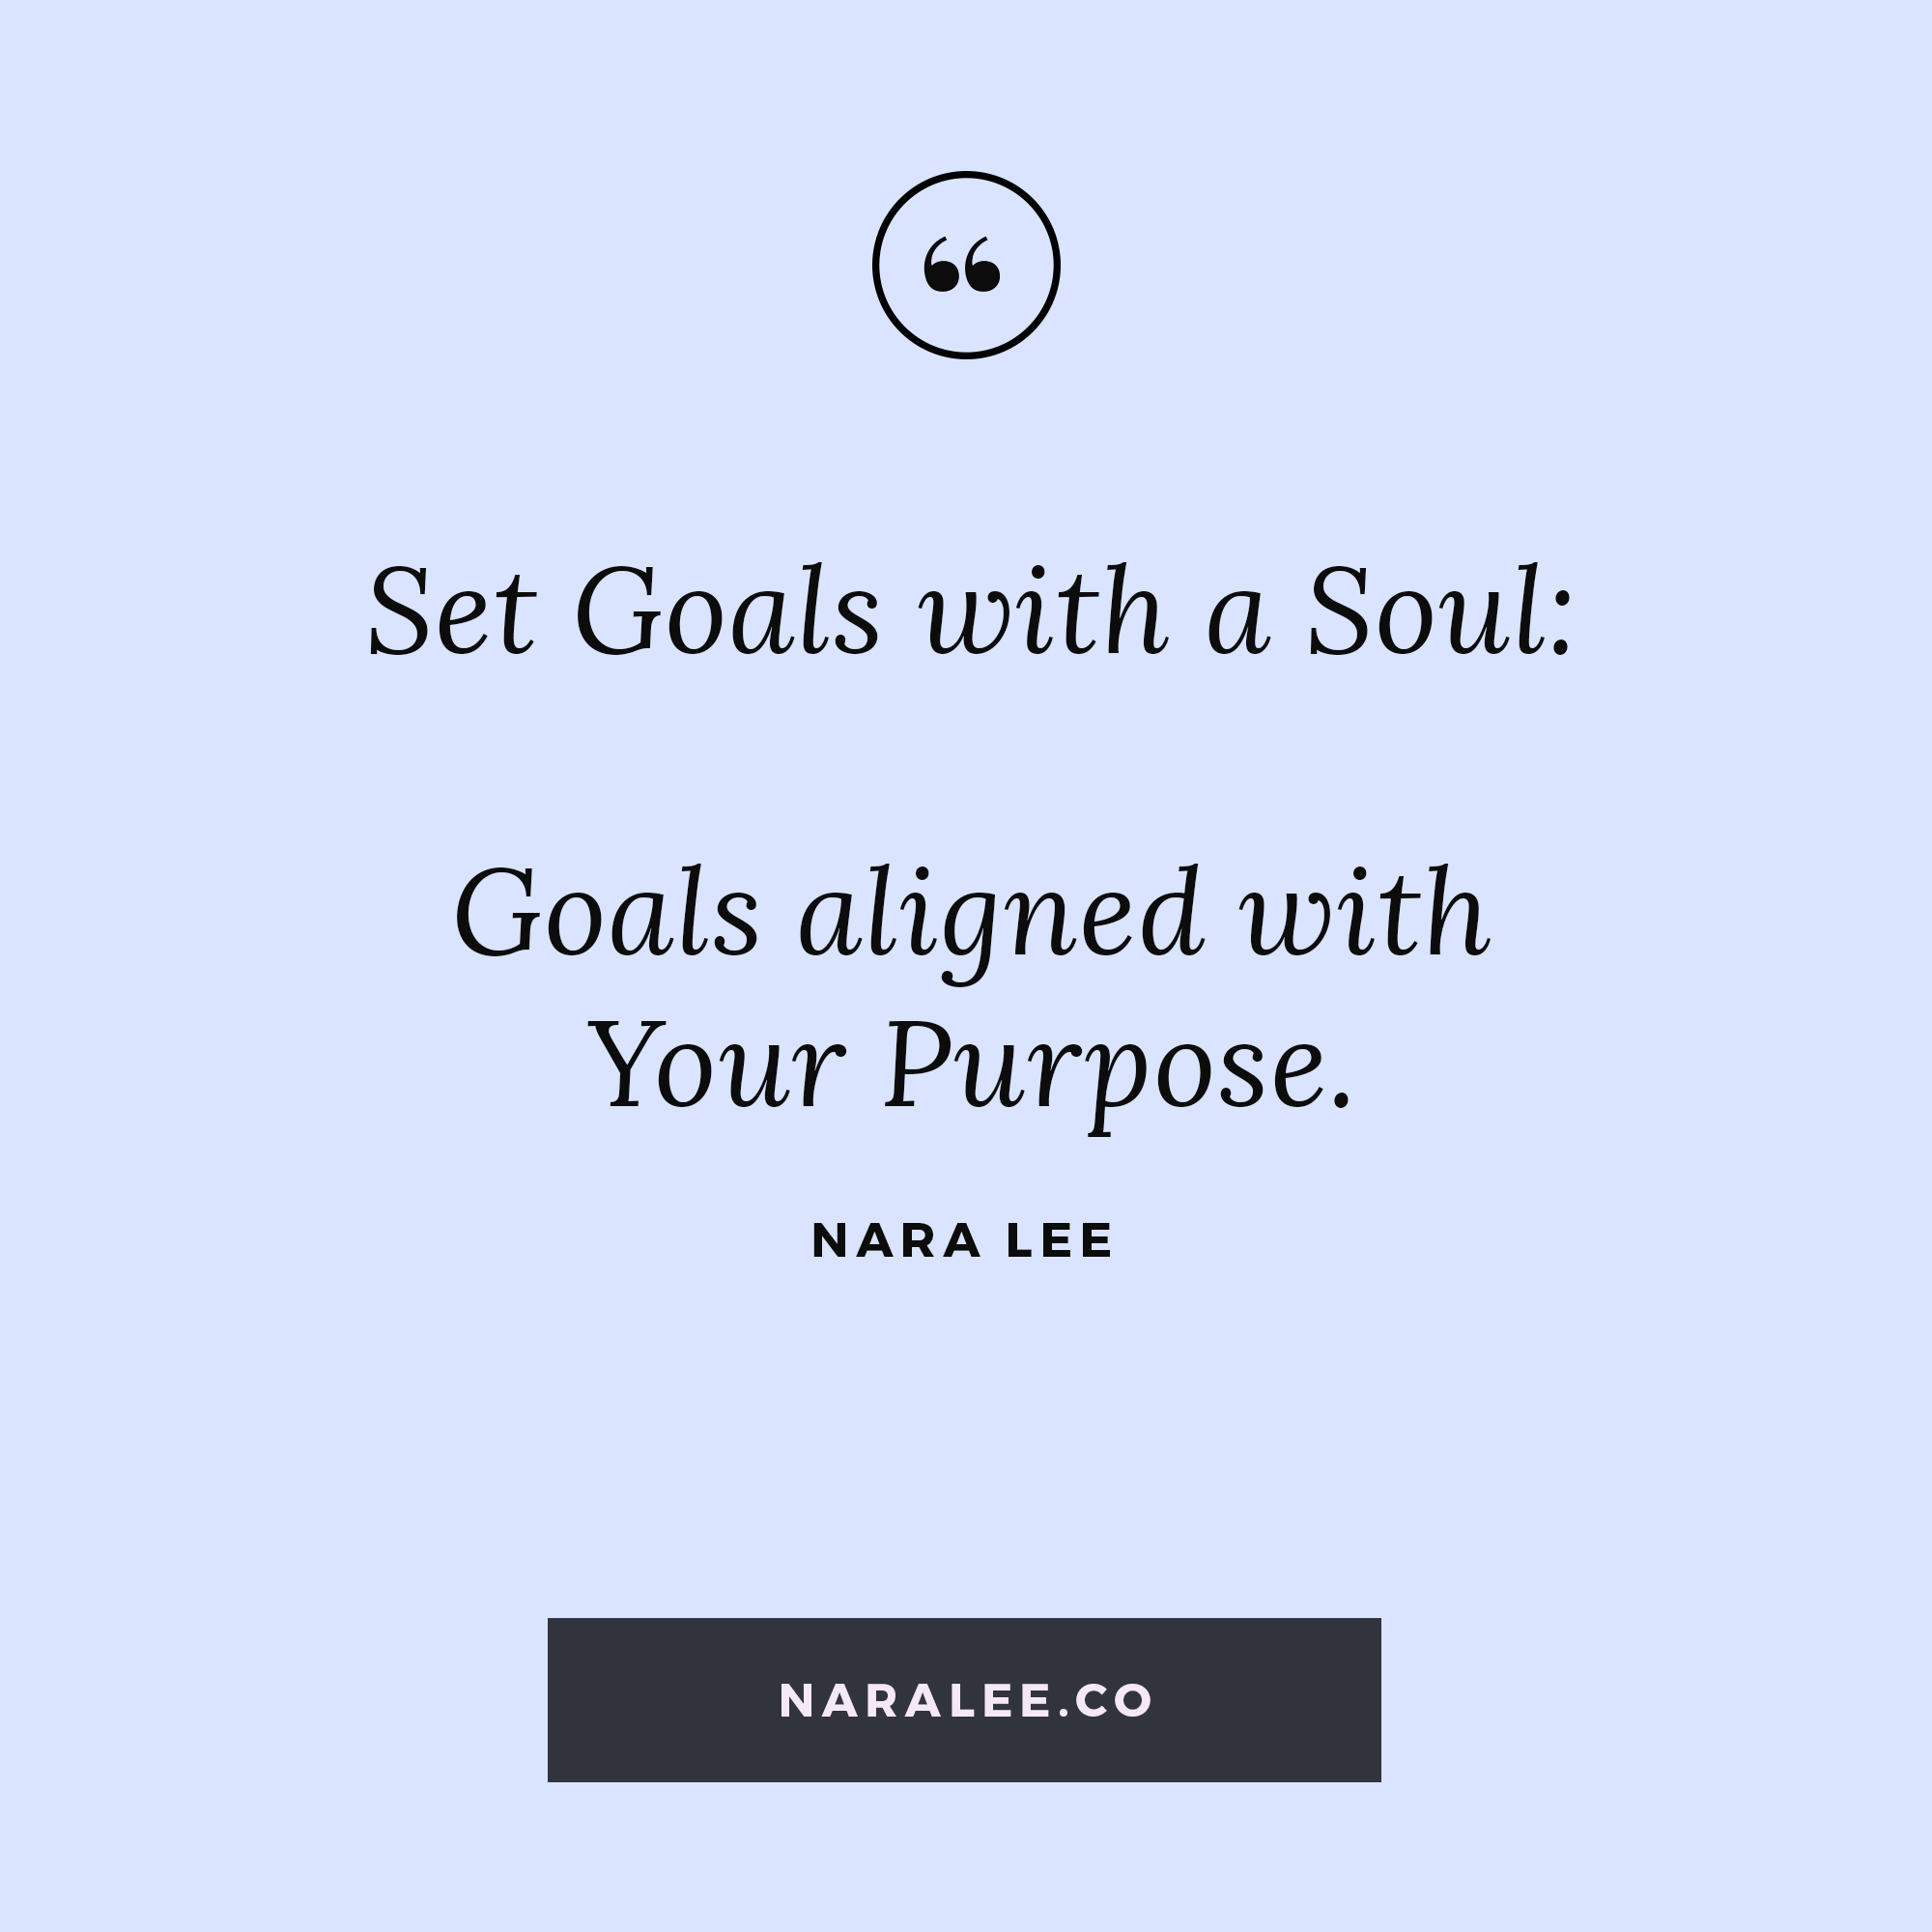 [Living-on-Purpose-Quotes]+Nara+Lee+Quotes+-+Life+Purpose+Quotes-+Goals+with+a+Soul.jpg